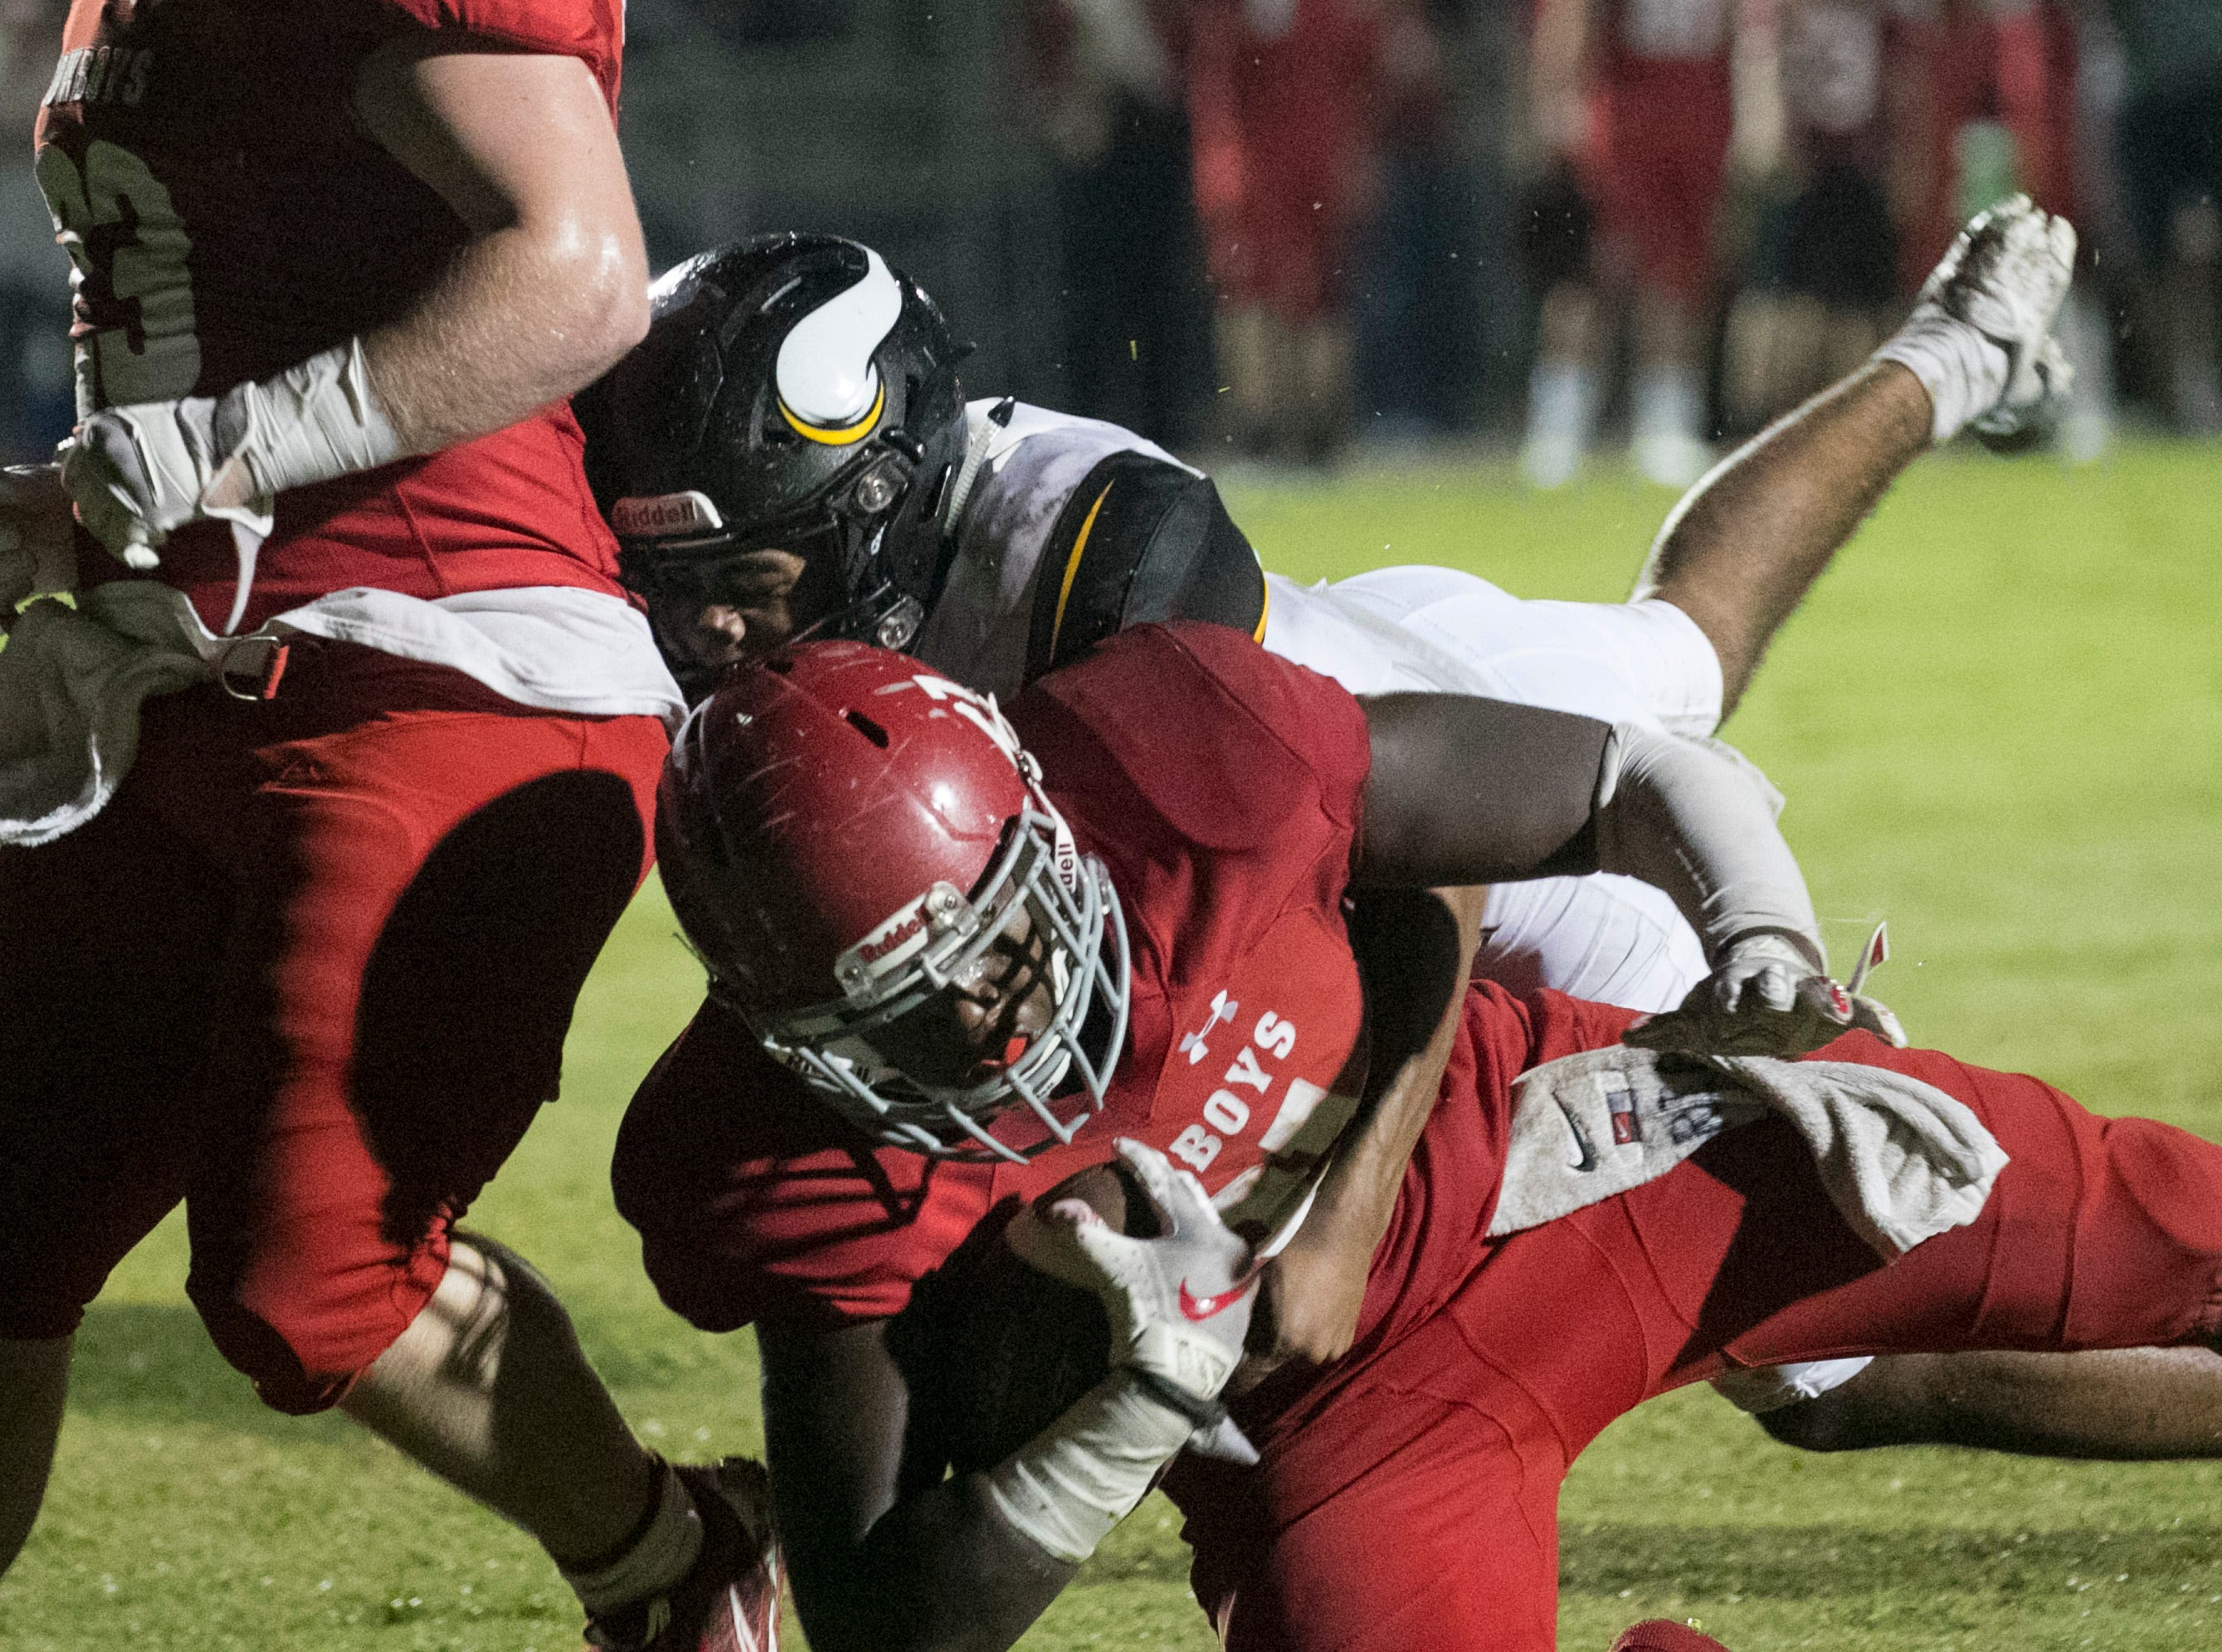 LaBelle's Maynard Blackmon is tackled in the endzone by Giancarlo Duplessy of Bishop Verot as he scores a touchdown in the first half on Friday night, Sept. 21, 2018, at LaBelle High School.